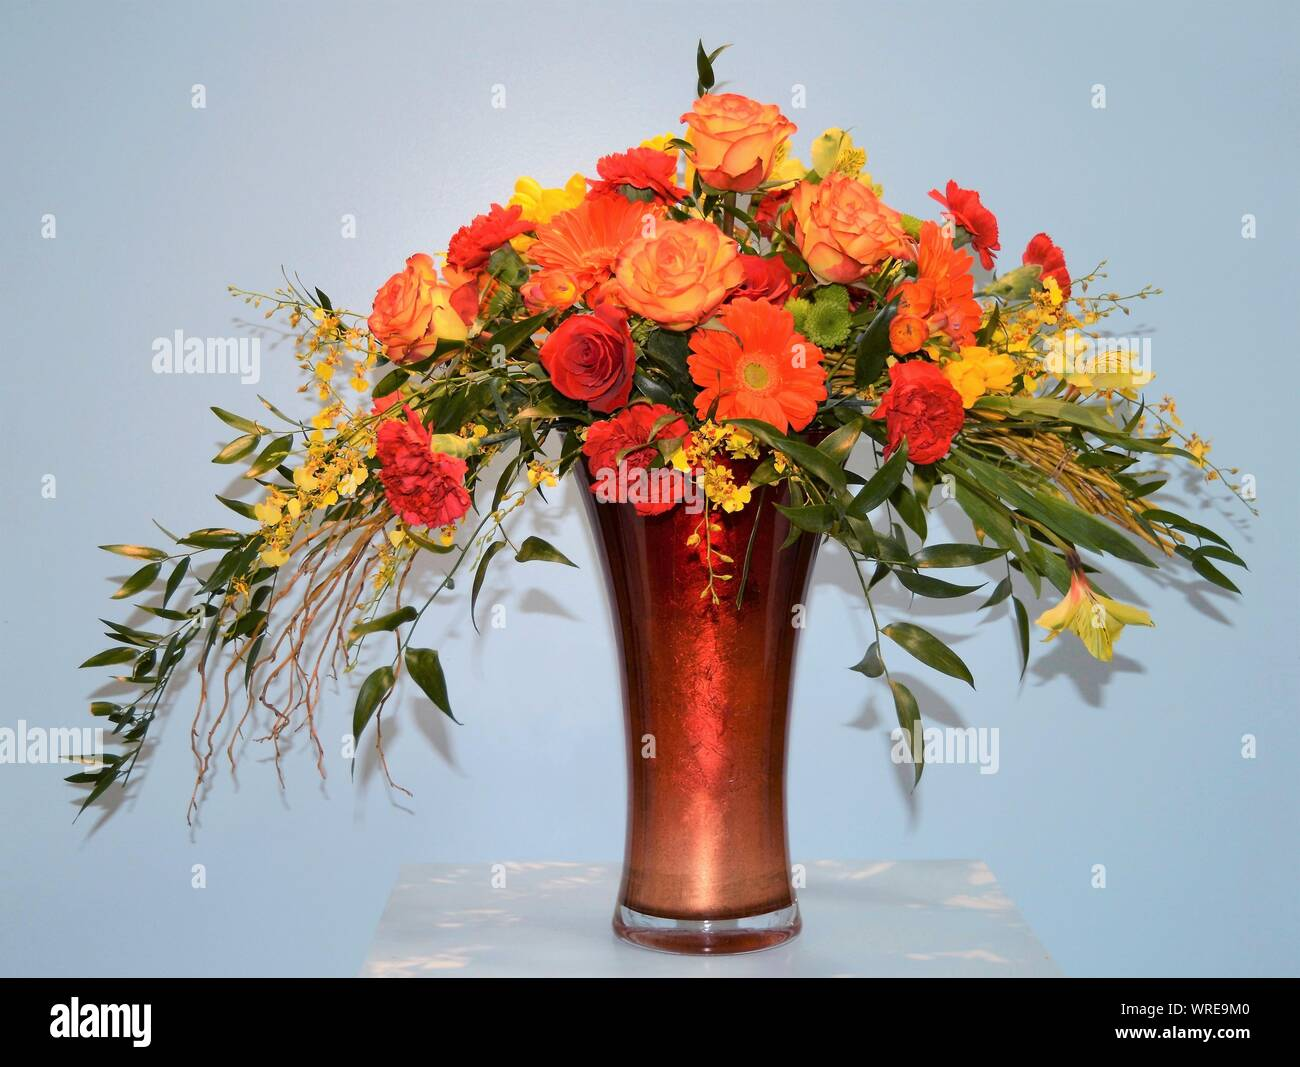 Lovely Autumn Floral Arrangement In A Tall Glass Vase Stock Photo Alamy